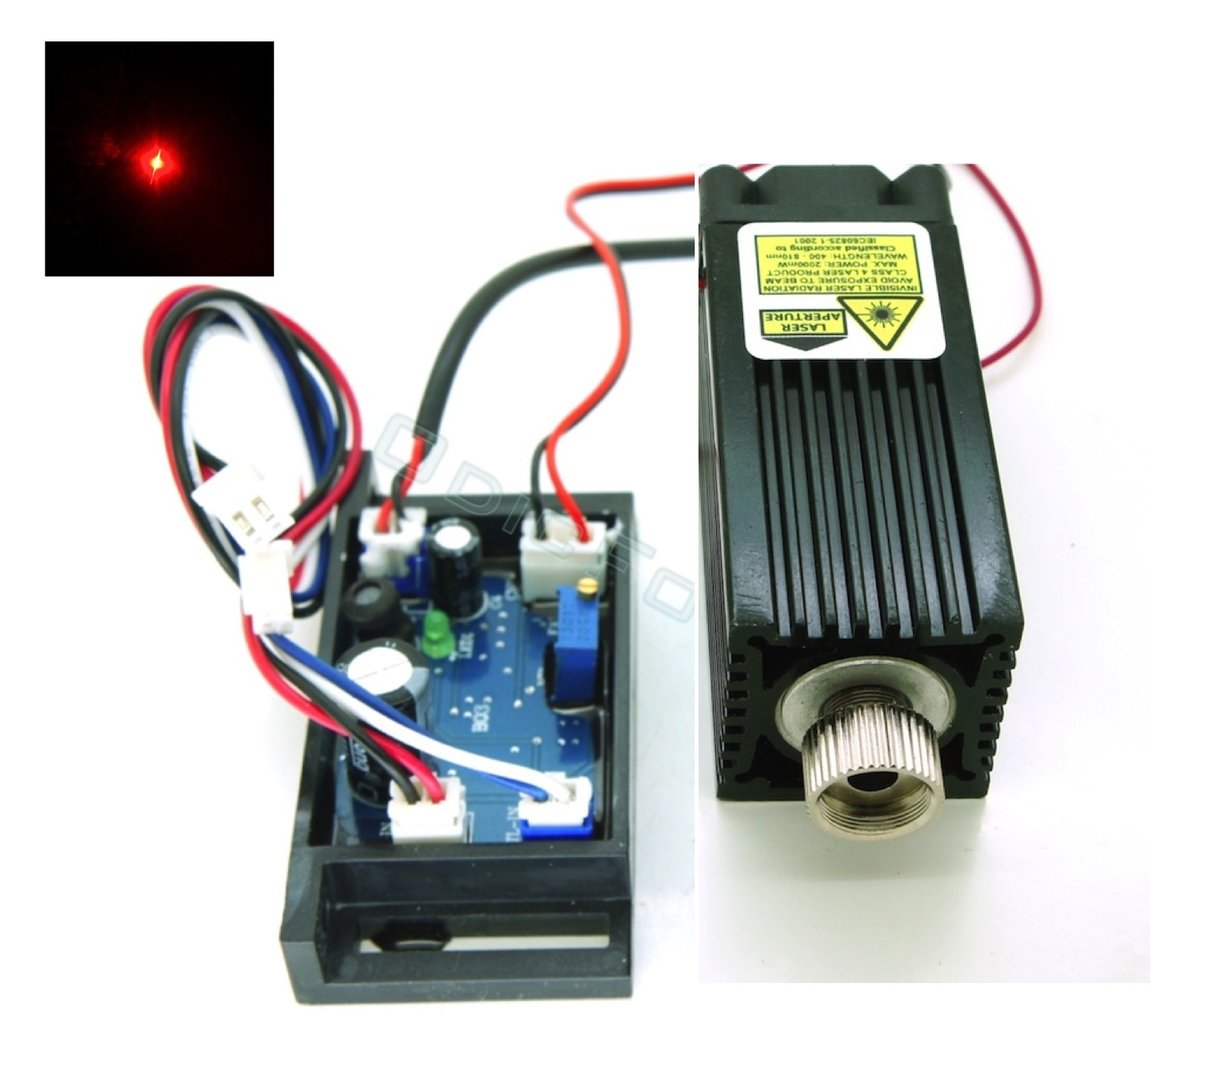 Component Bundle for 638nm (Red) 700-1000mW Laser Module with TTL and Adjustable Focus